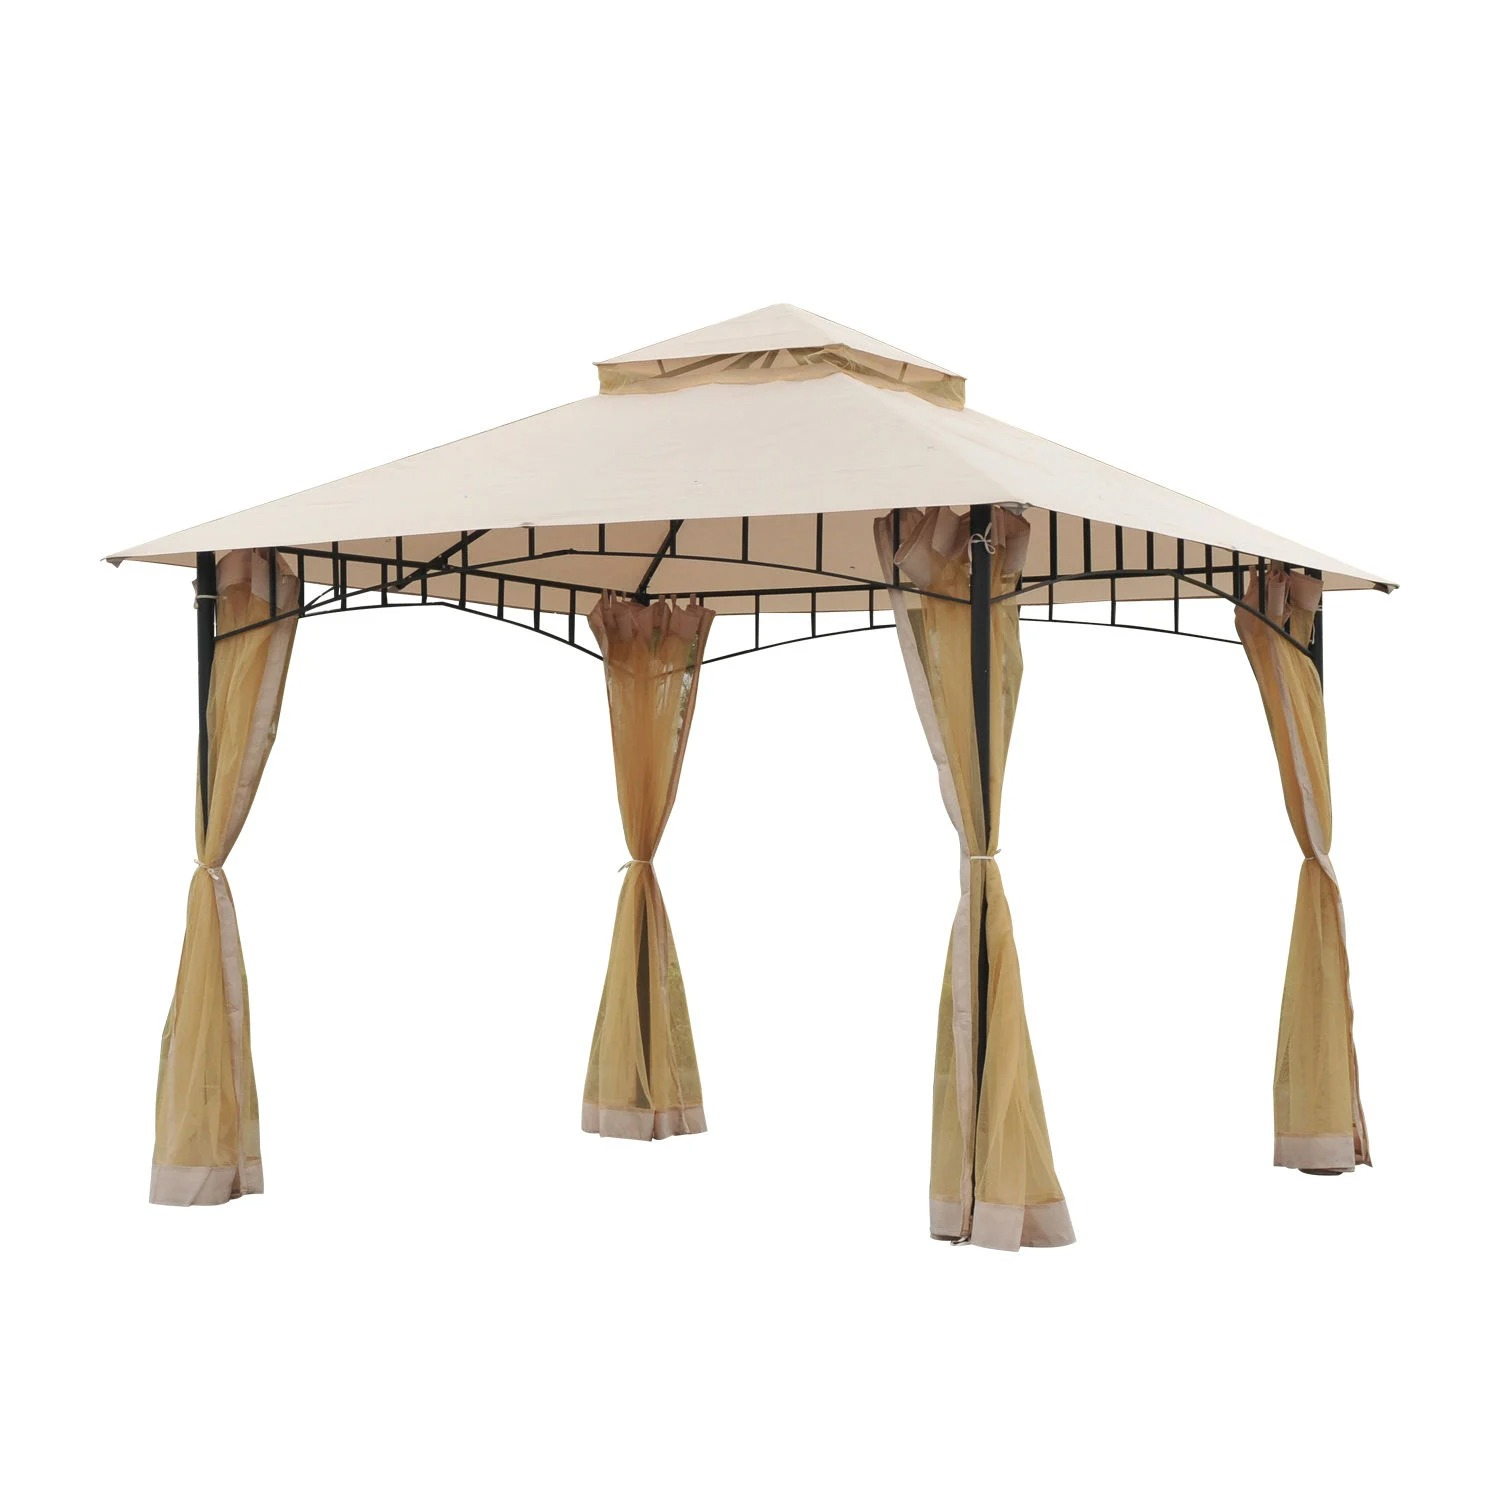 Enter for a chance to win 10' x 10' deluxe outdoor canopy, worth $196. Giveaway Image